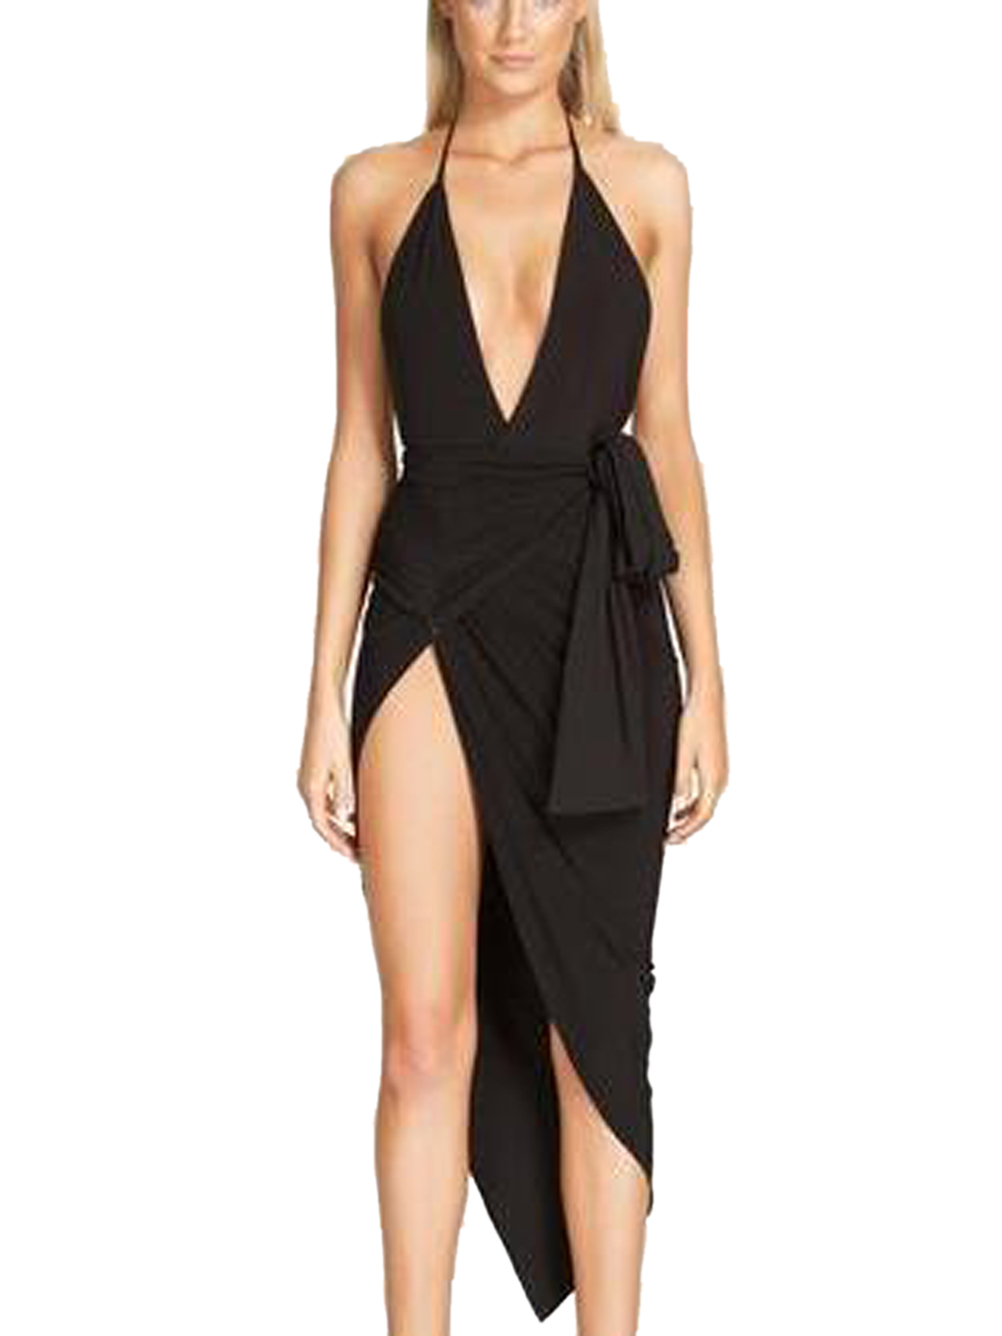 Backless Halter Wrap Spaghetti Strap High Side Slit Sexy Women Dress With Belt Bowknot Asymmetrical 2016 Fashion Party Club(China (Mainland))